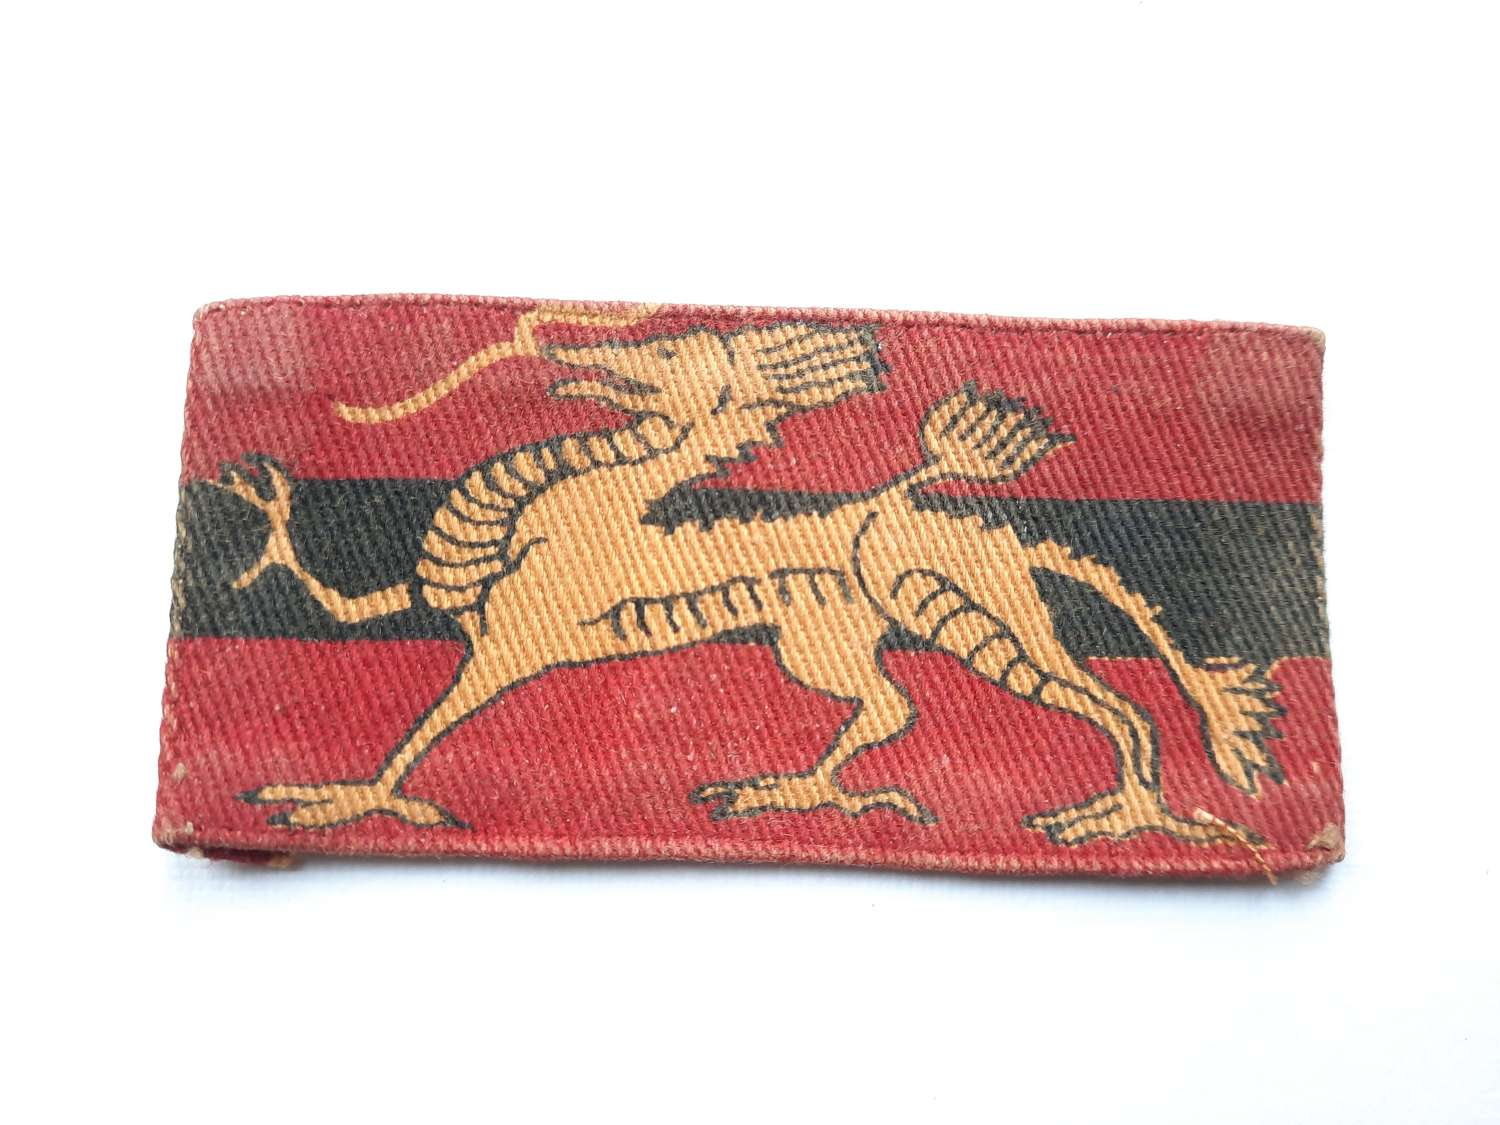 Hong Kong Military Service Corps Printed Patch